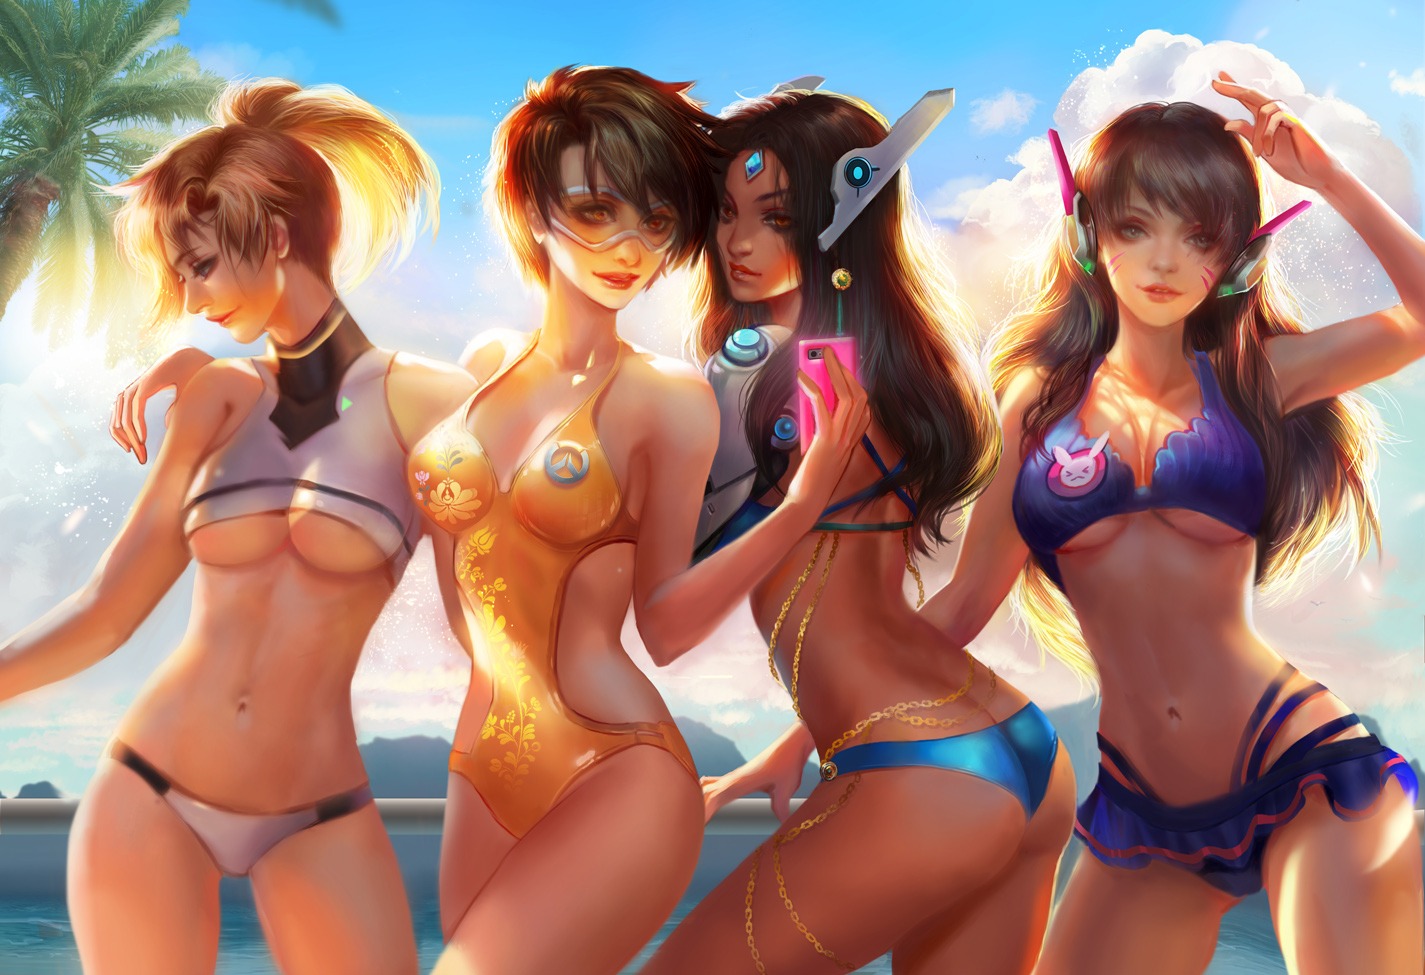 Sexy Overwatch Babes at the Beach